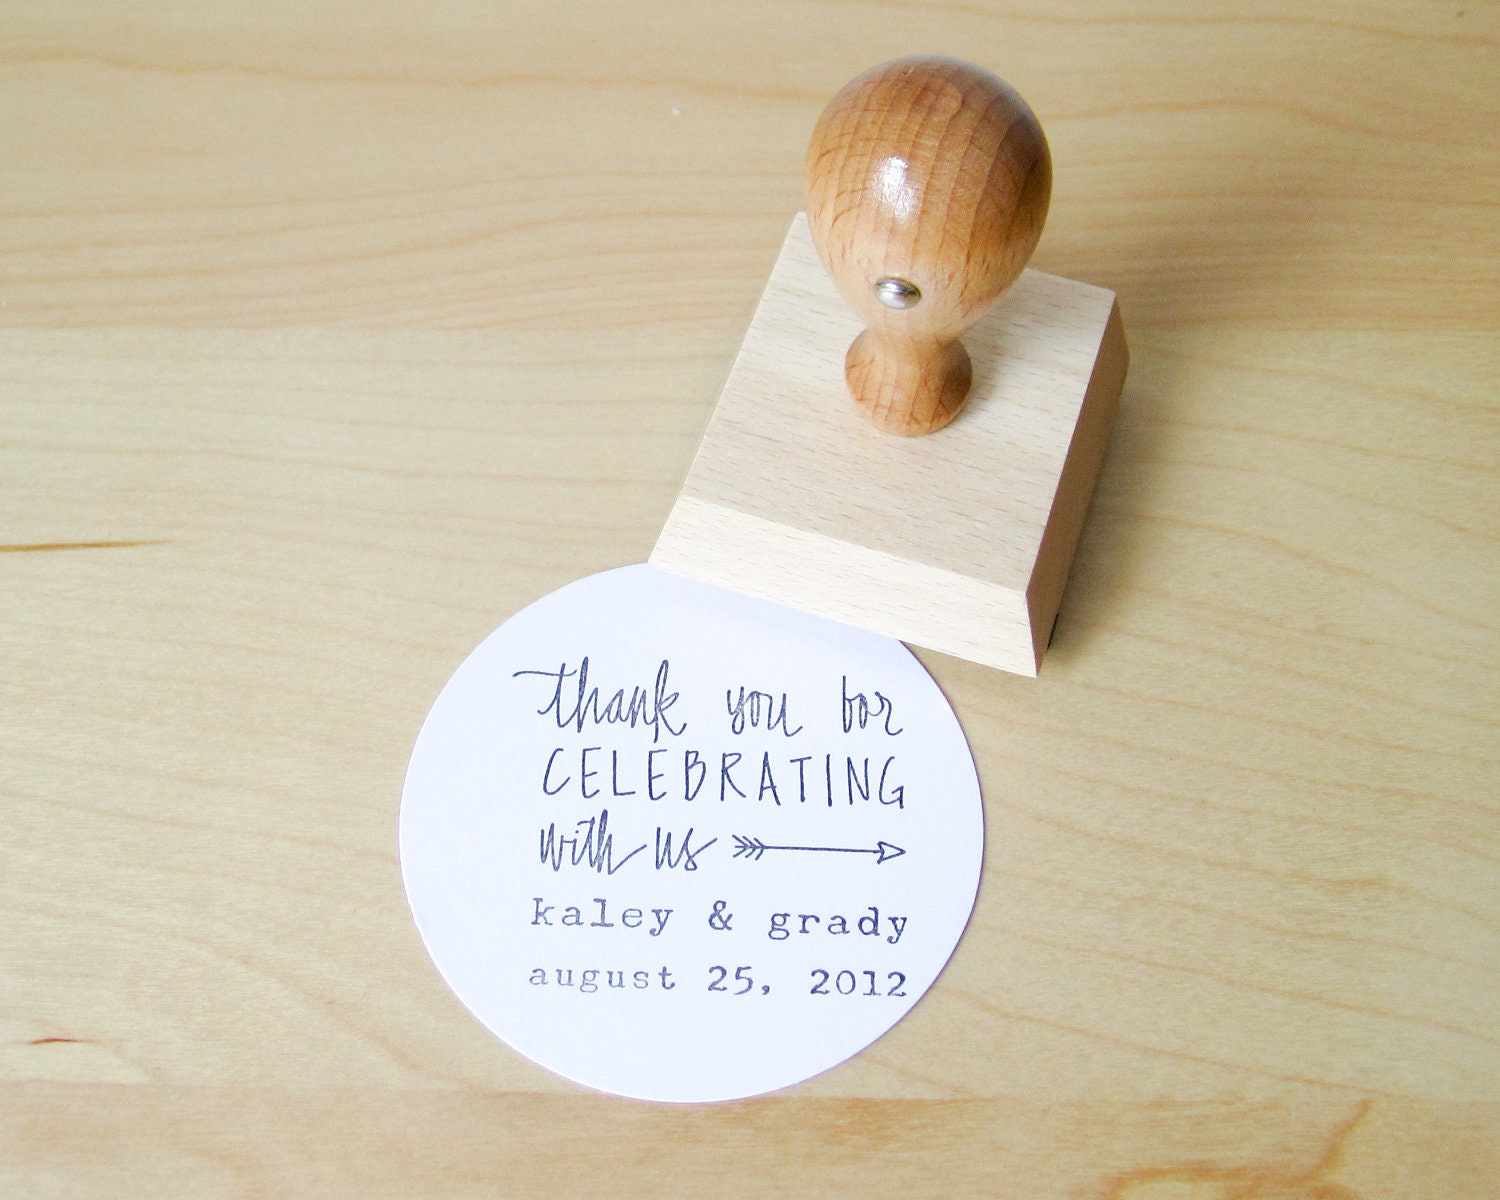 Custom Wedding Calligrapy Stamp - 2 inch Thank You For Celebrating With Us personalized rubber stamp for DIY wedding favors